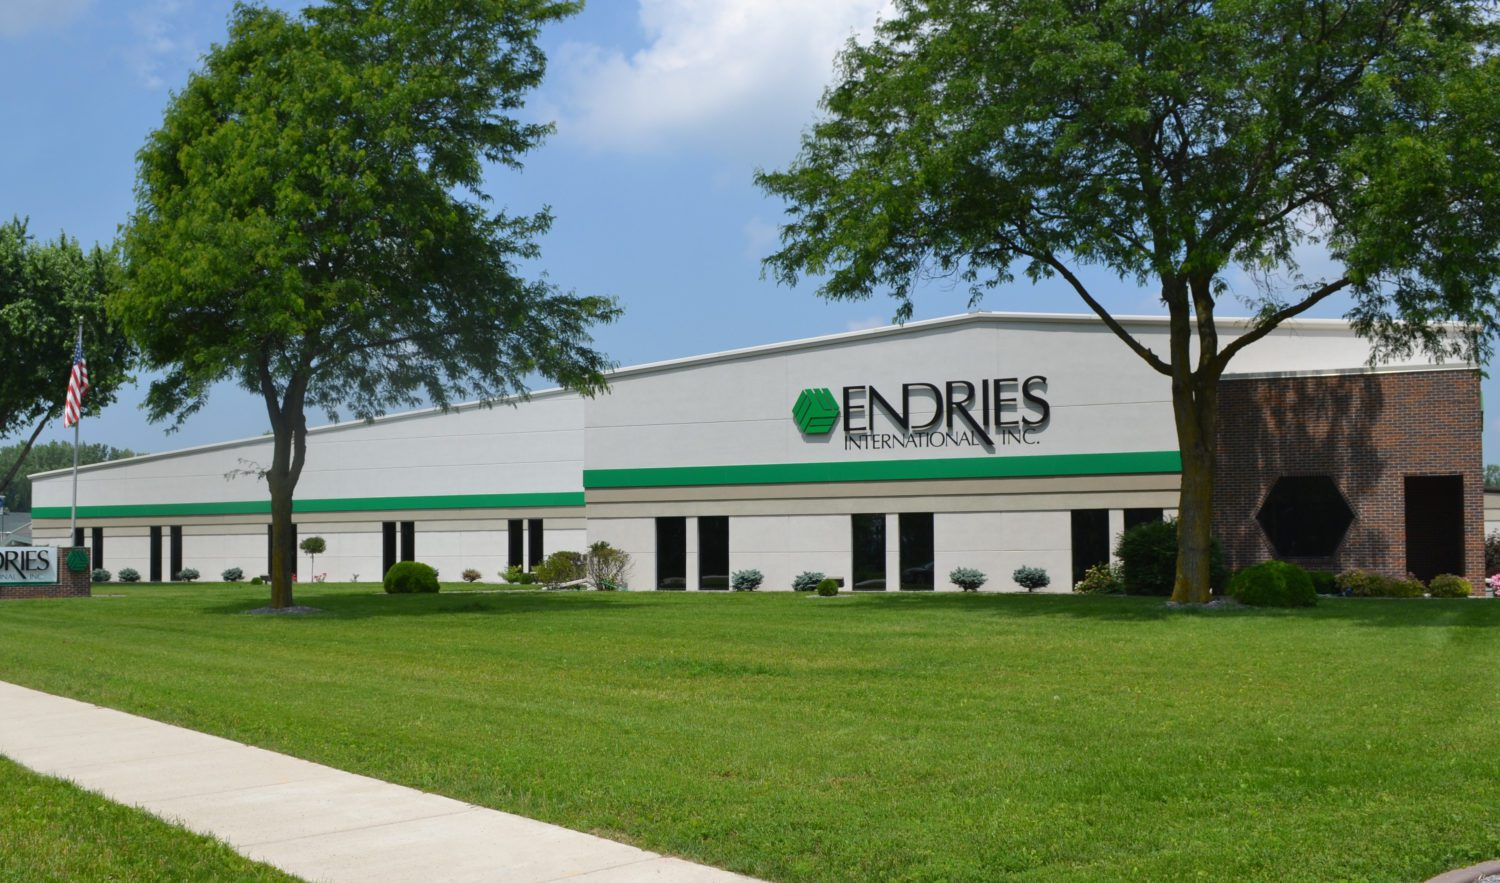 ENDRIES INTERNATIONAL